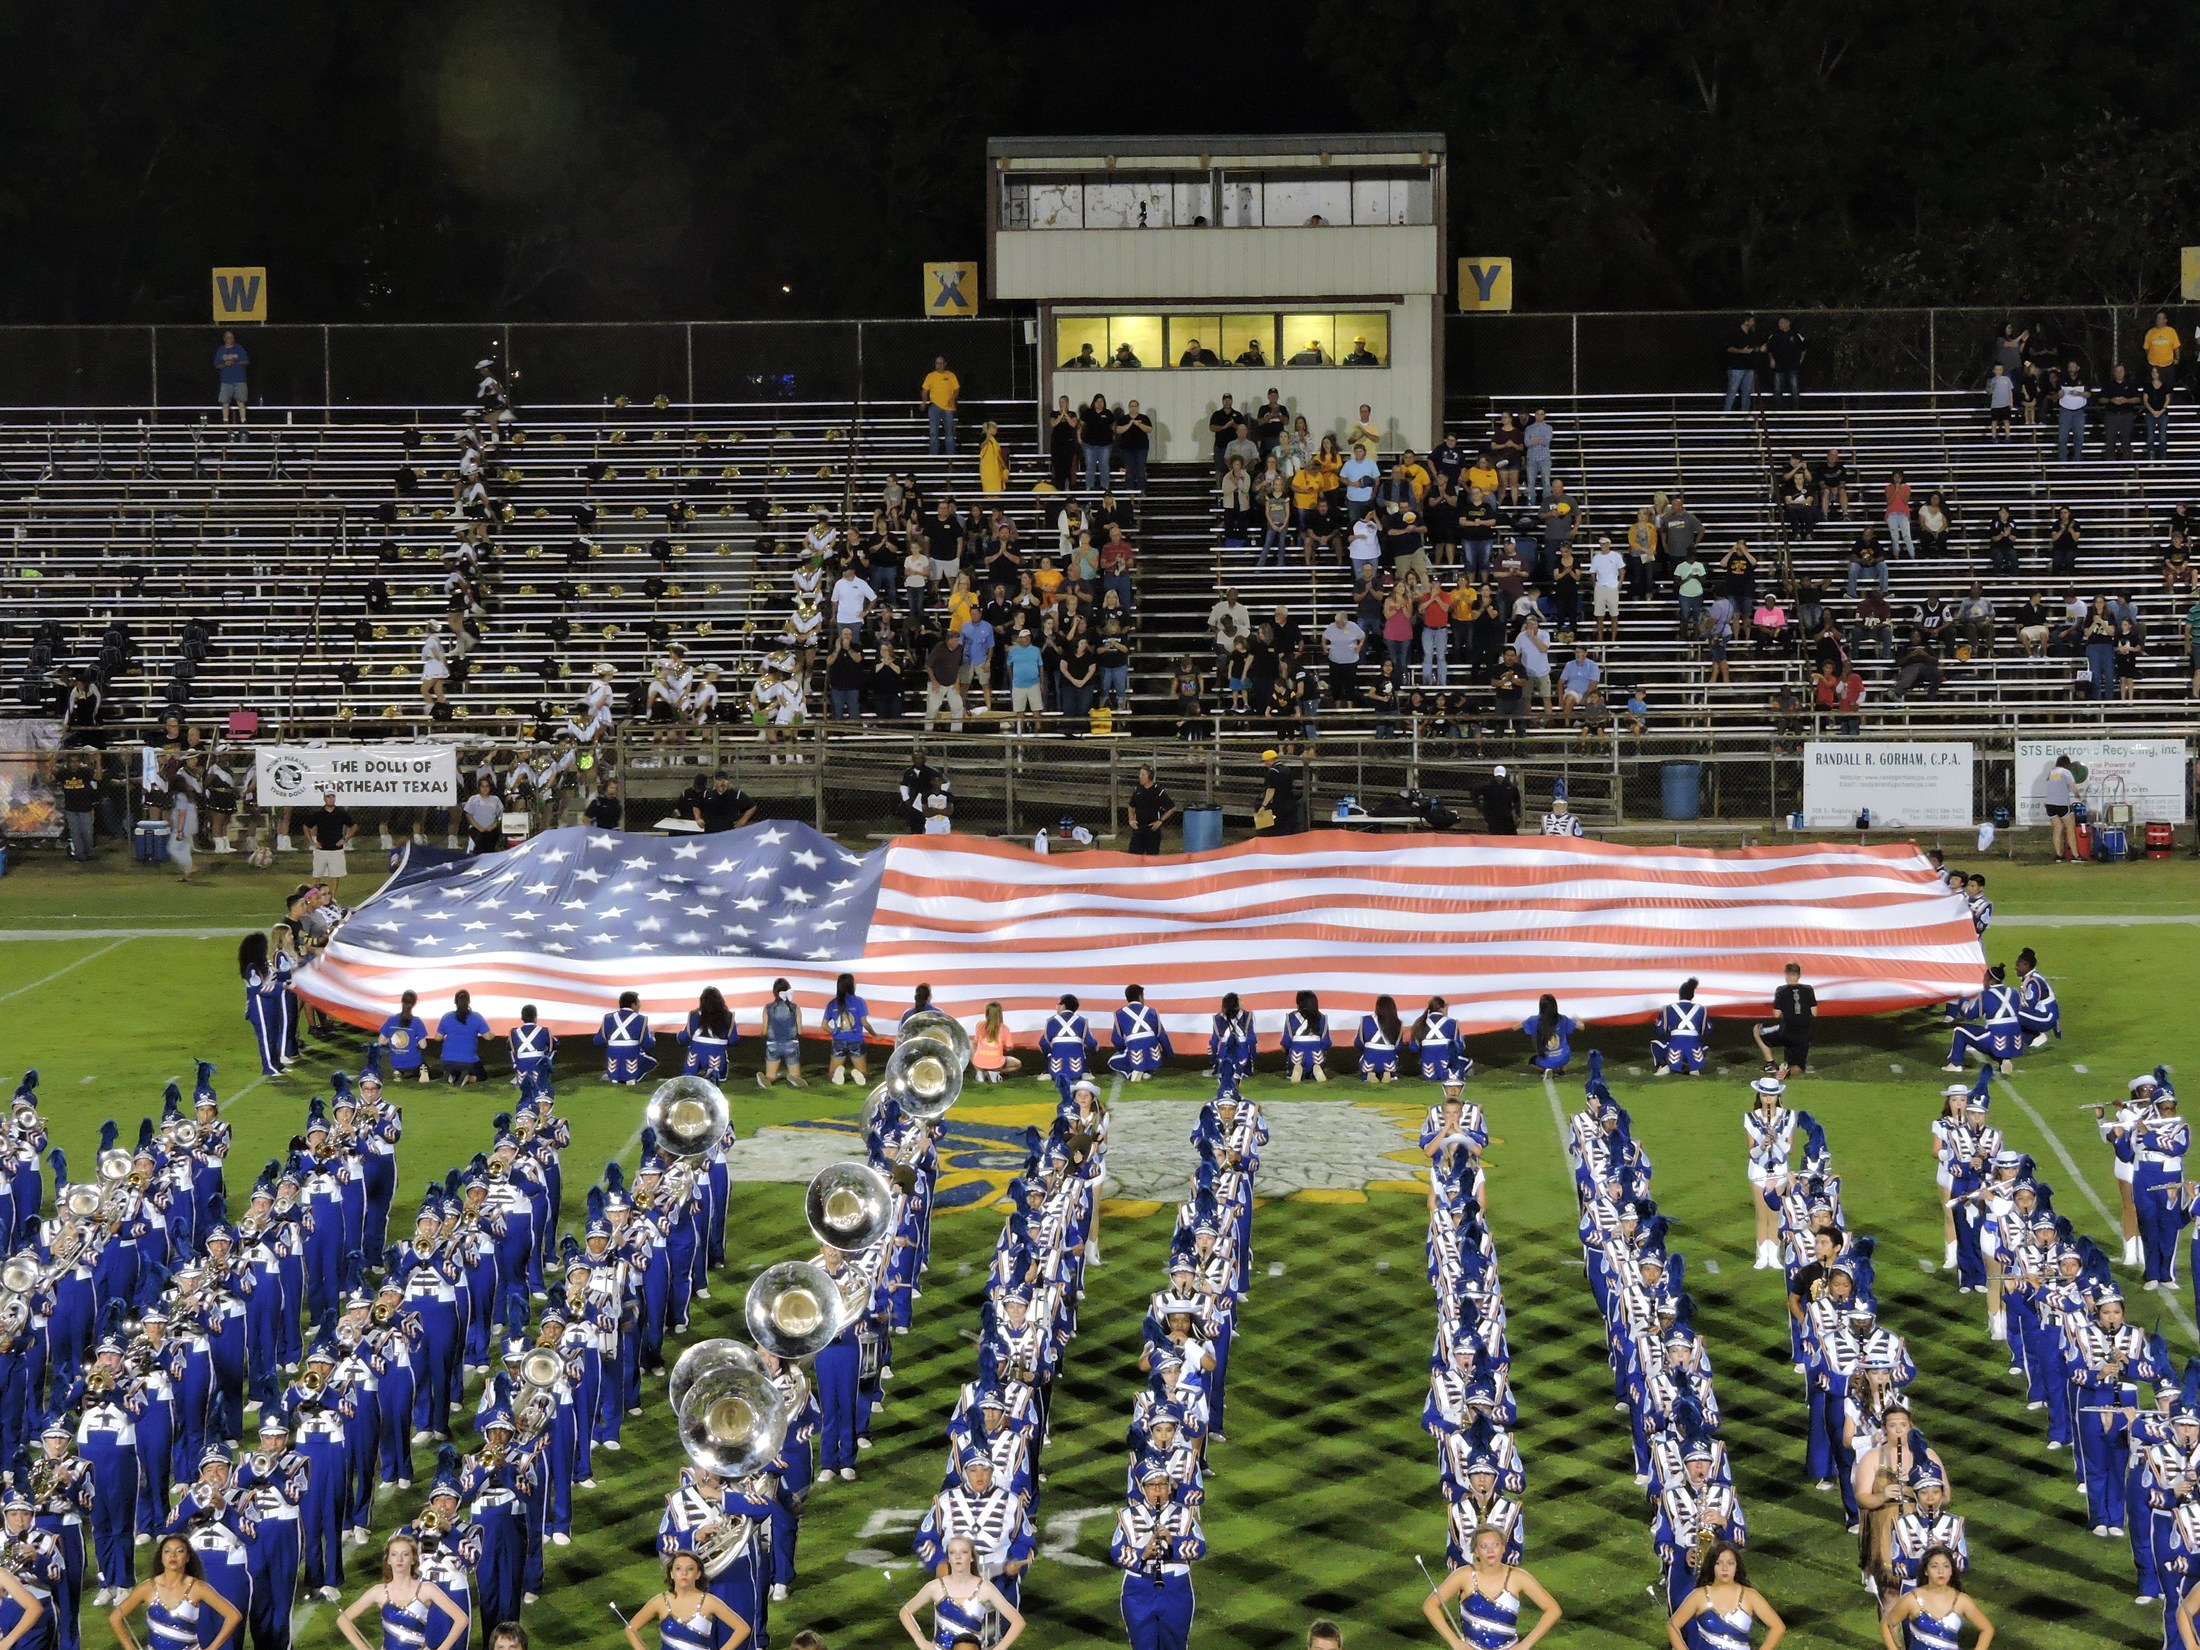 band with the large flag